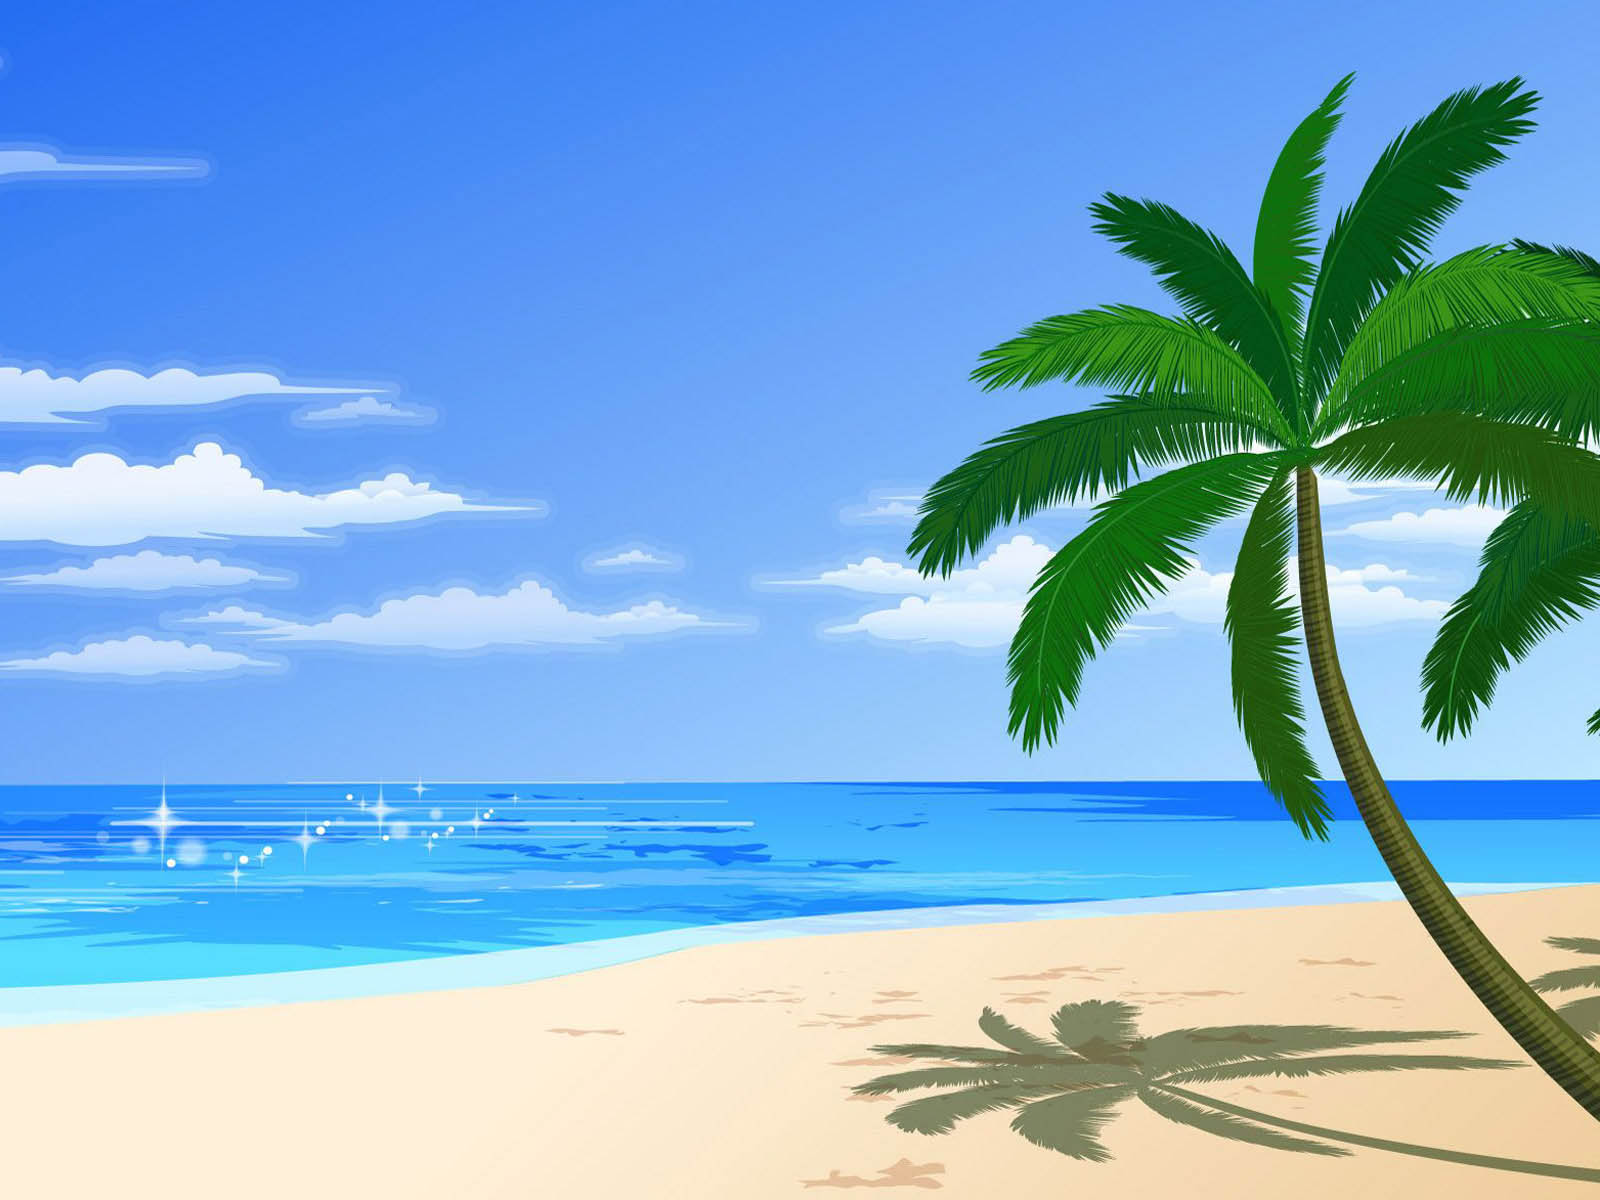 Beach clipart #4, Download drawings